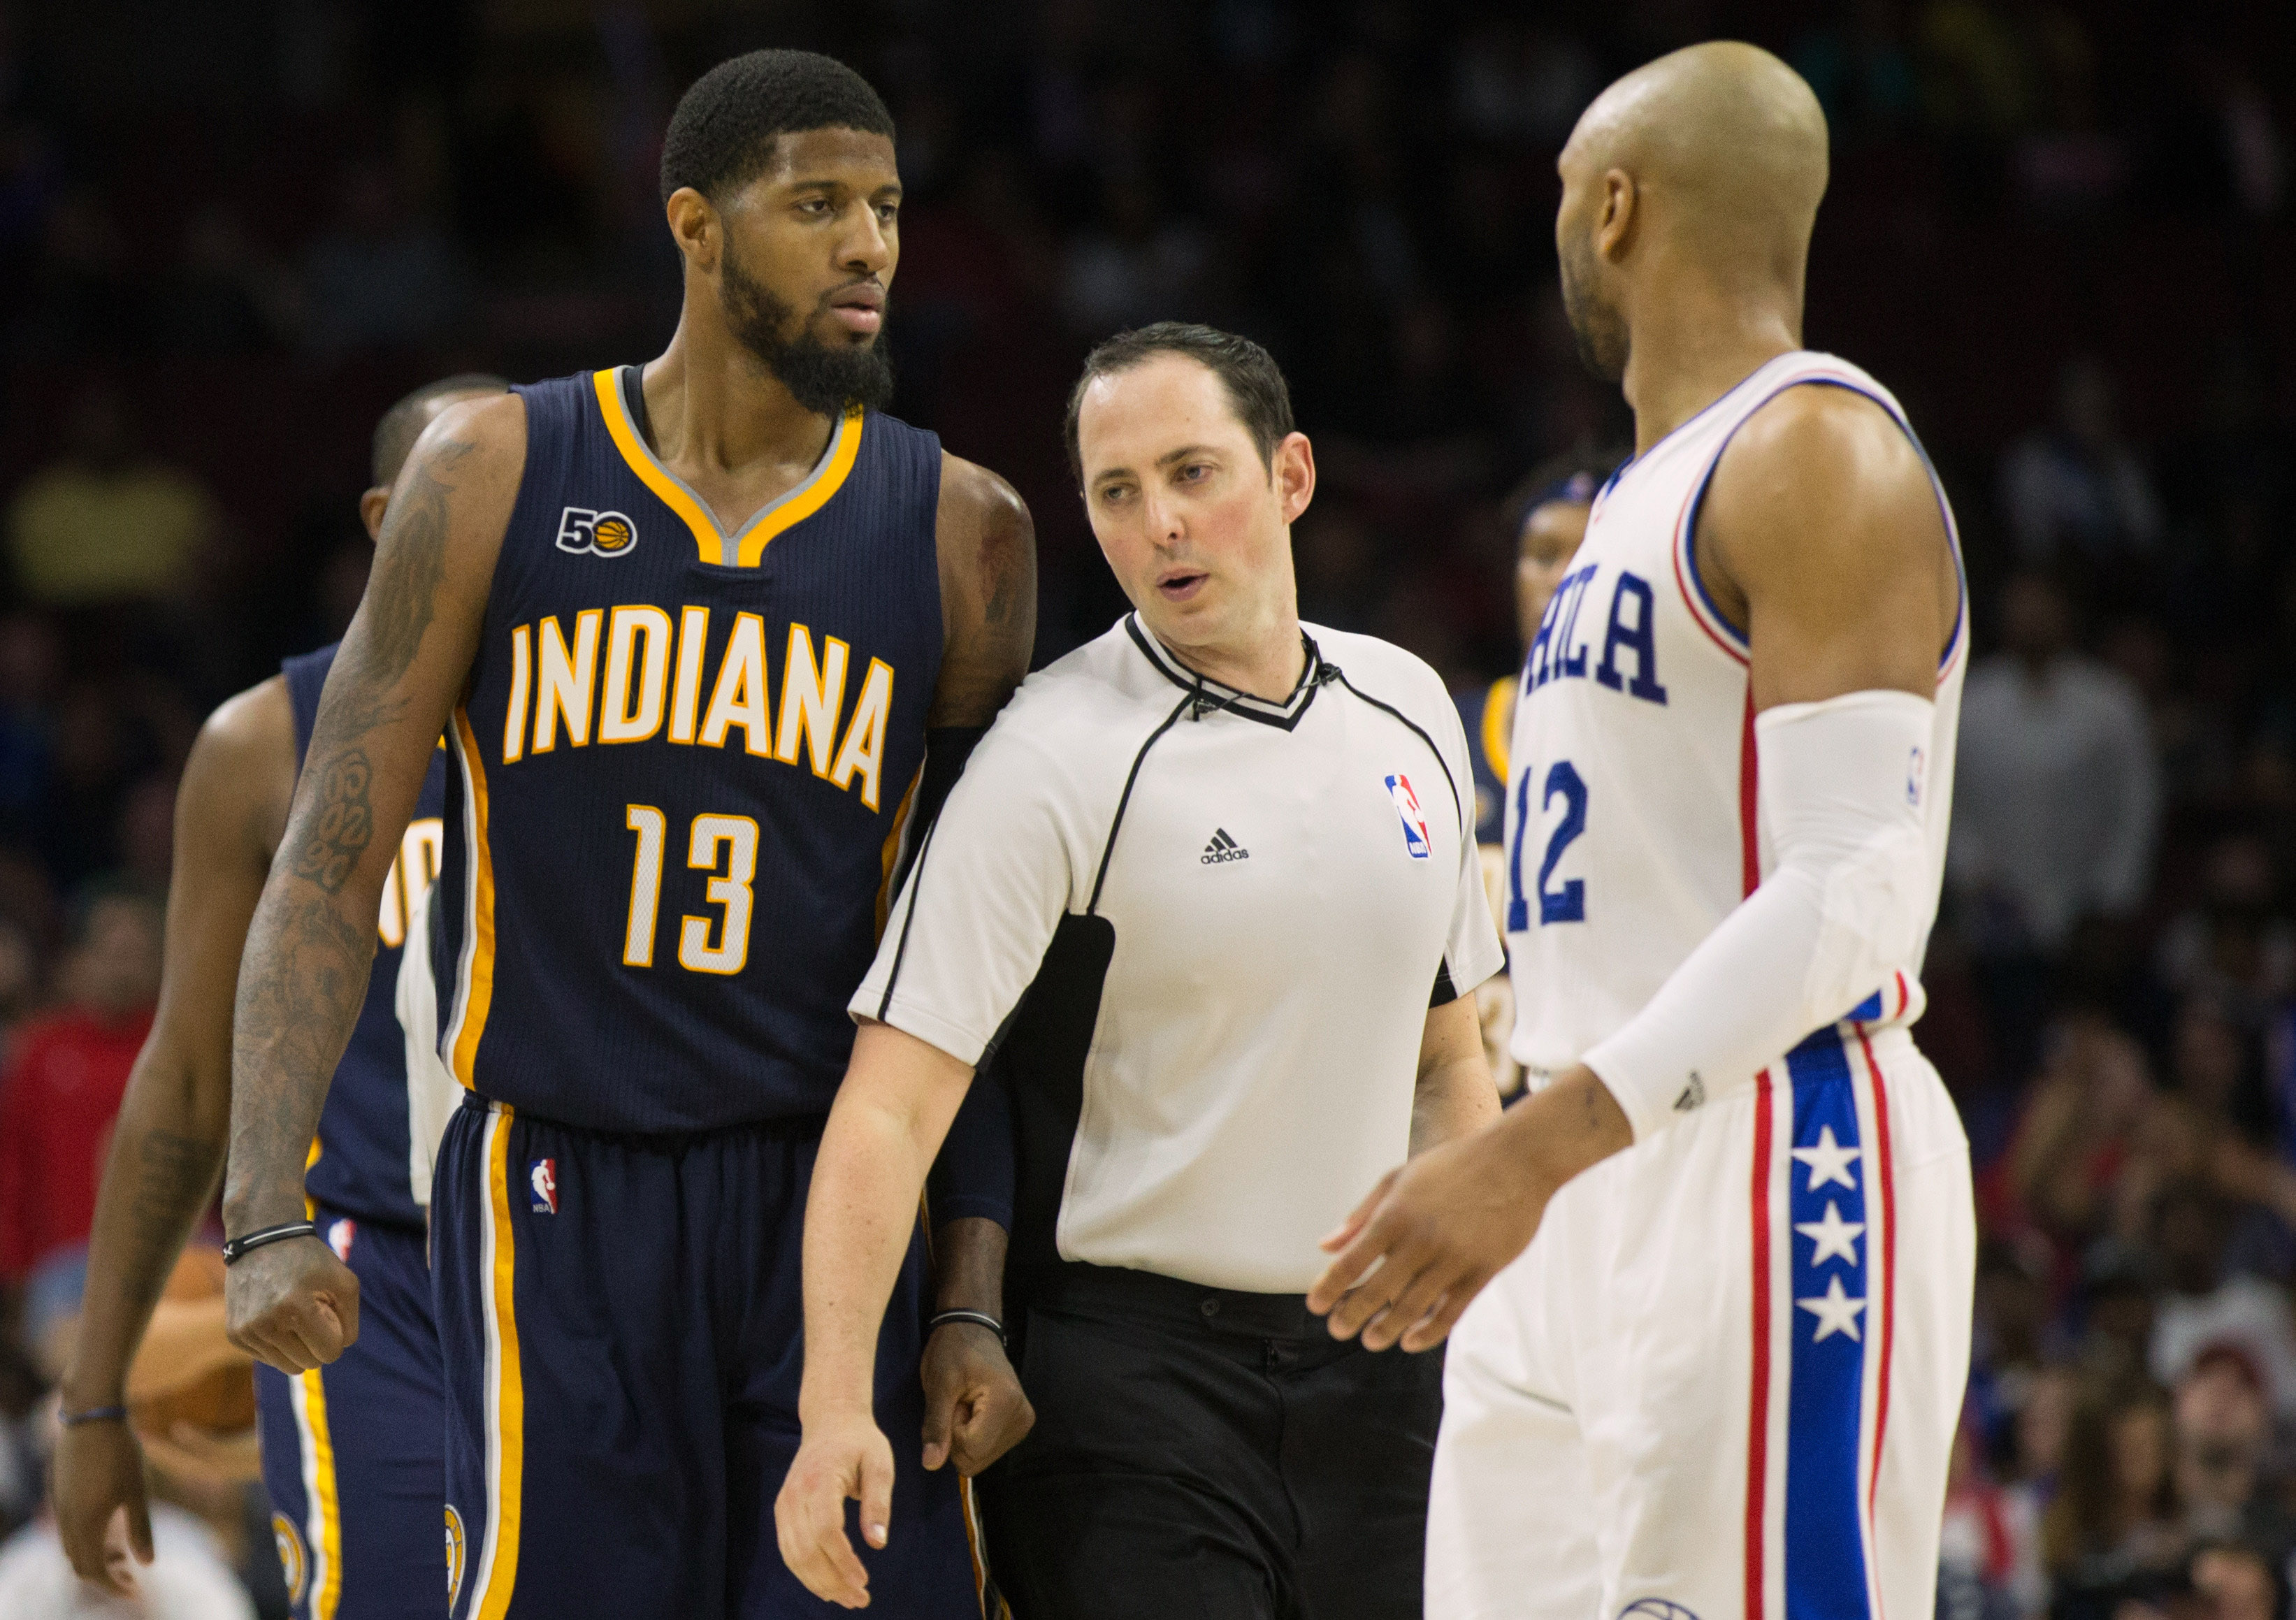 10005374-nba-indiana-pacers-at-philadelphia-76ers